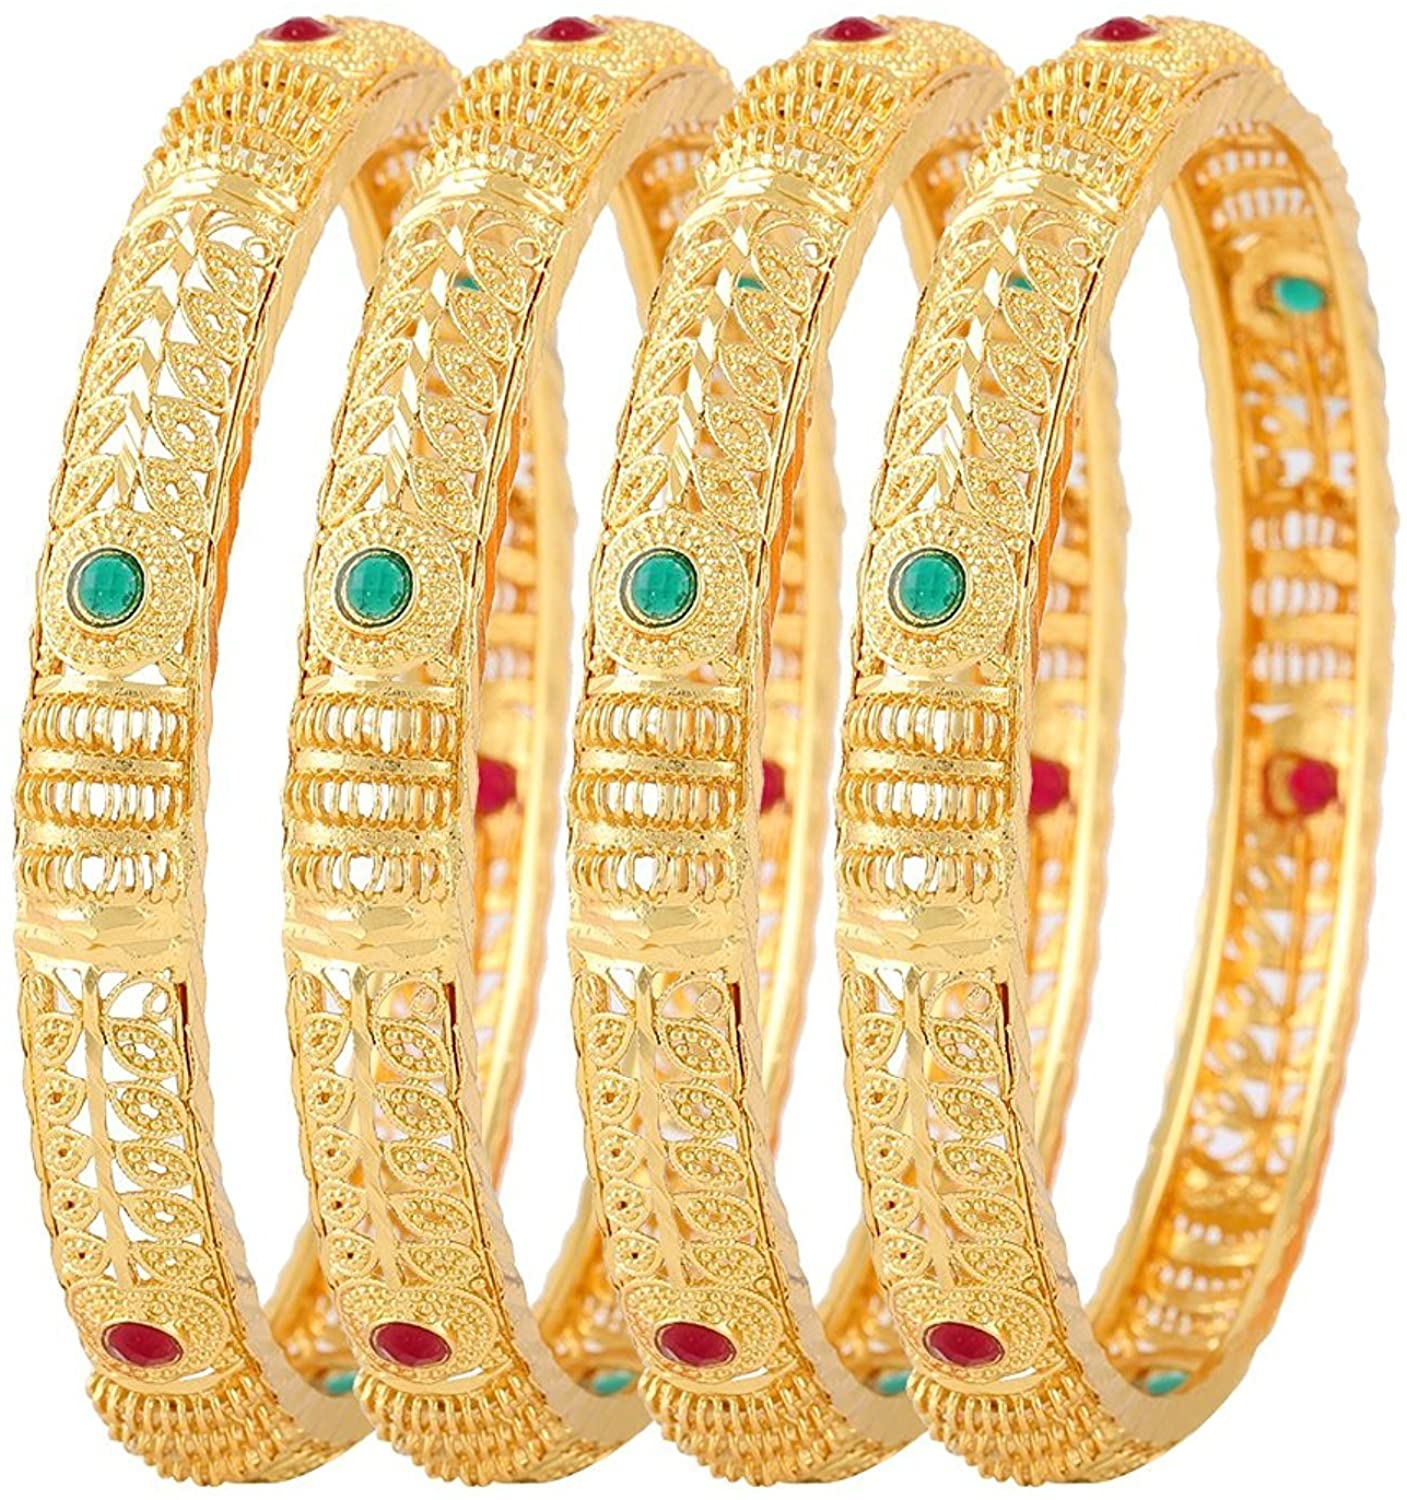 YouBella Ethnic Bollywood Gold Plated Traditional Bracelets Bangles Jewellery for Women and Girls